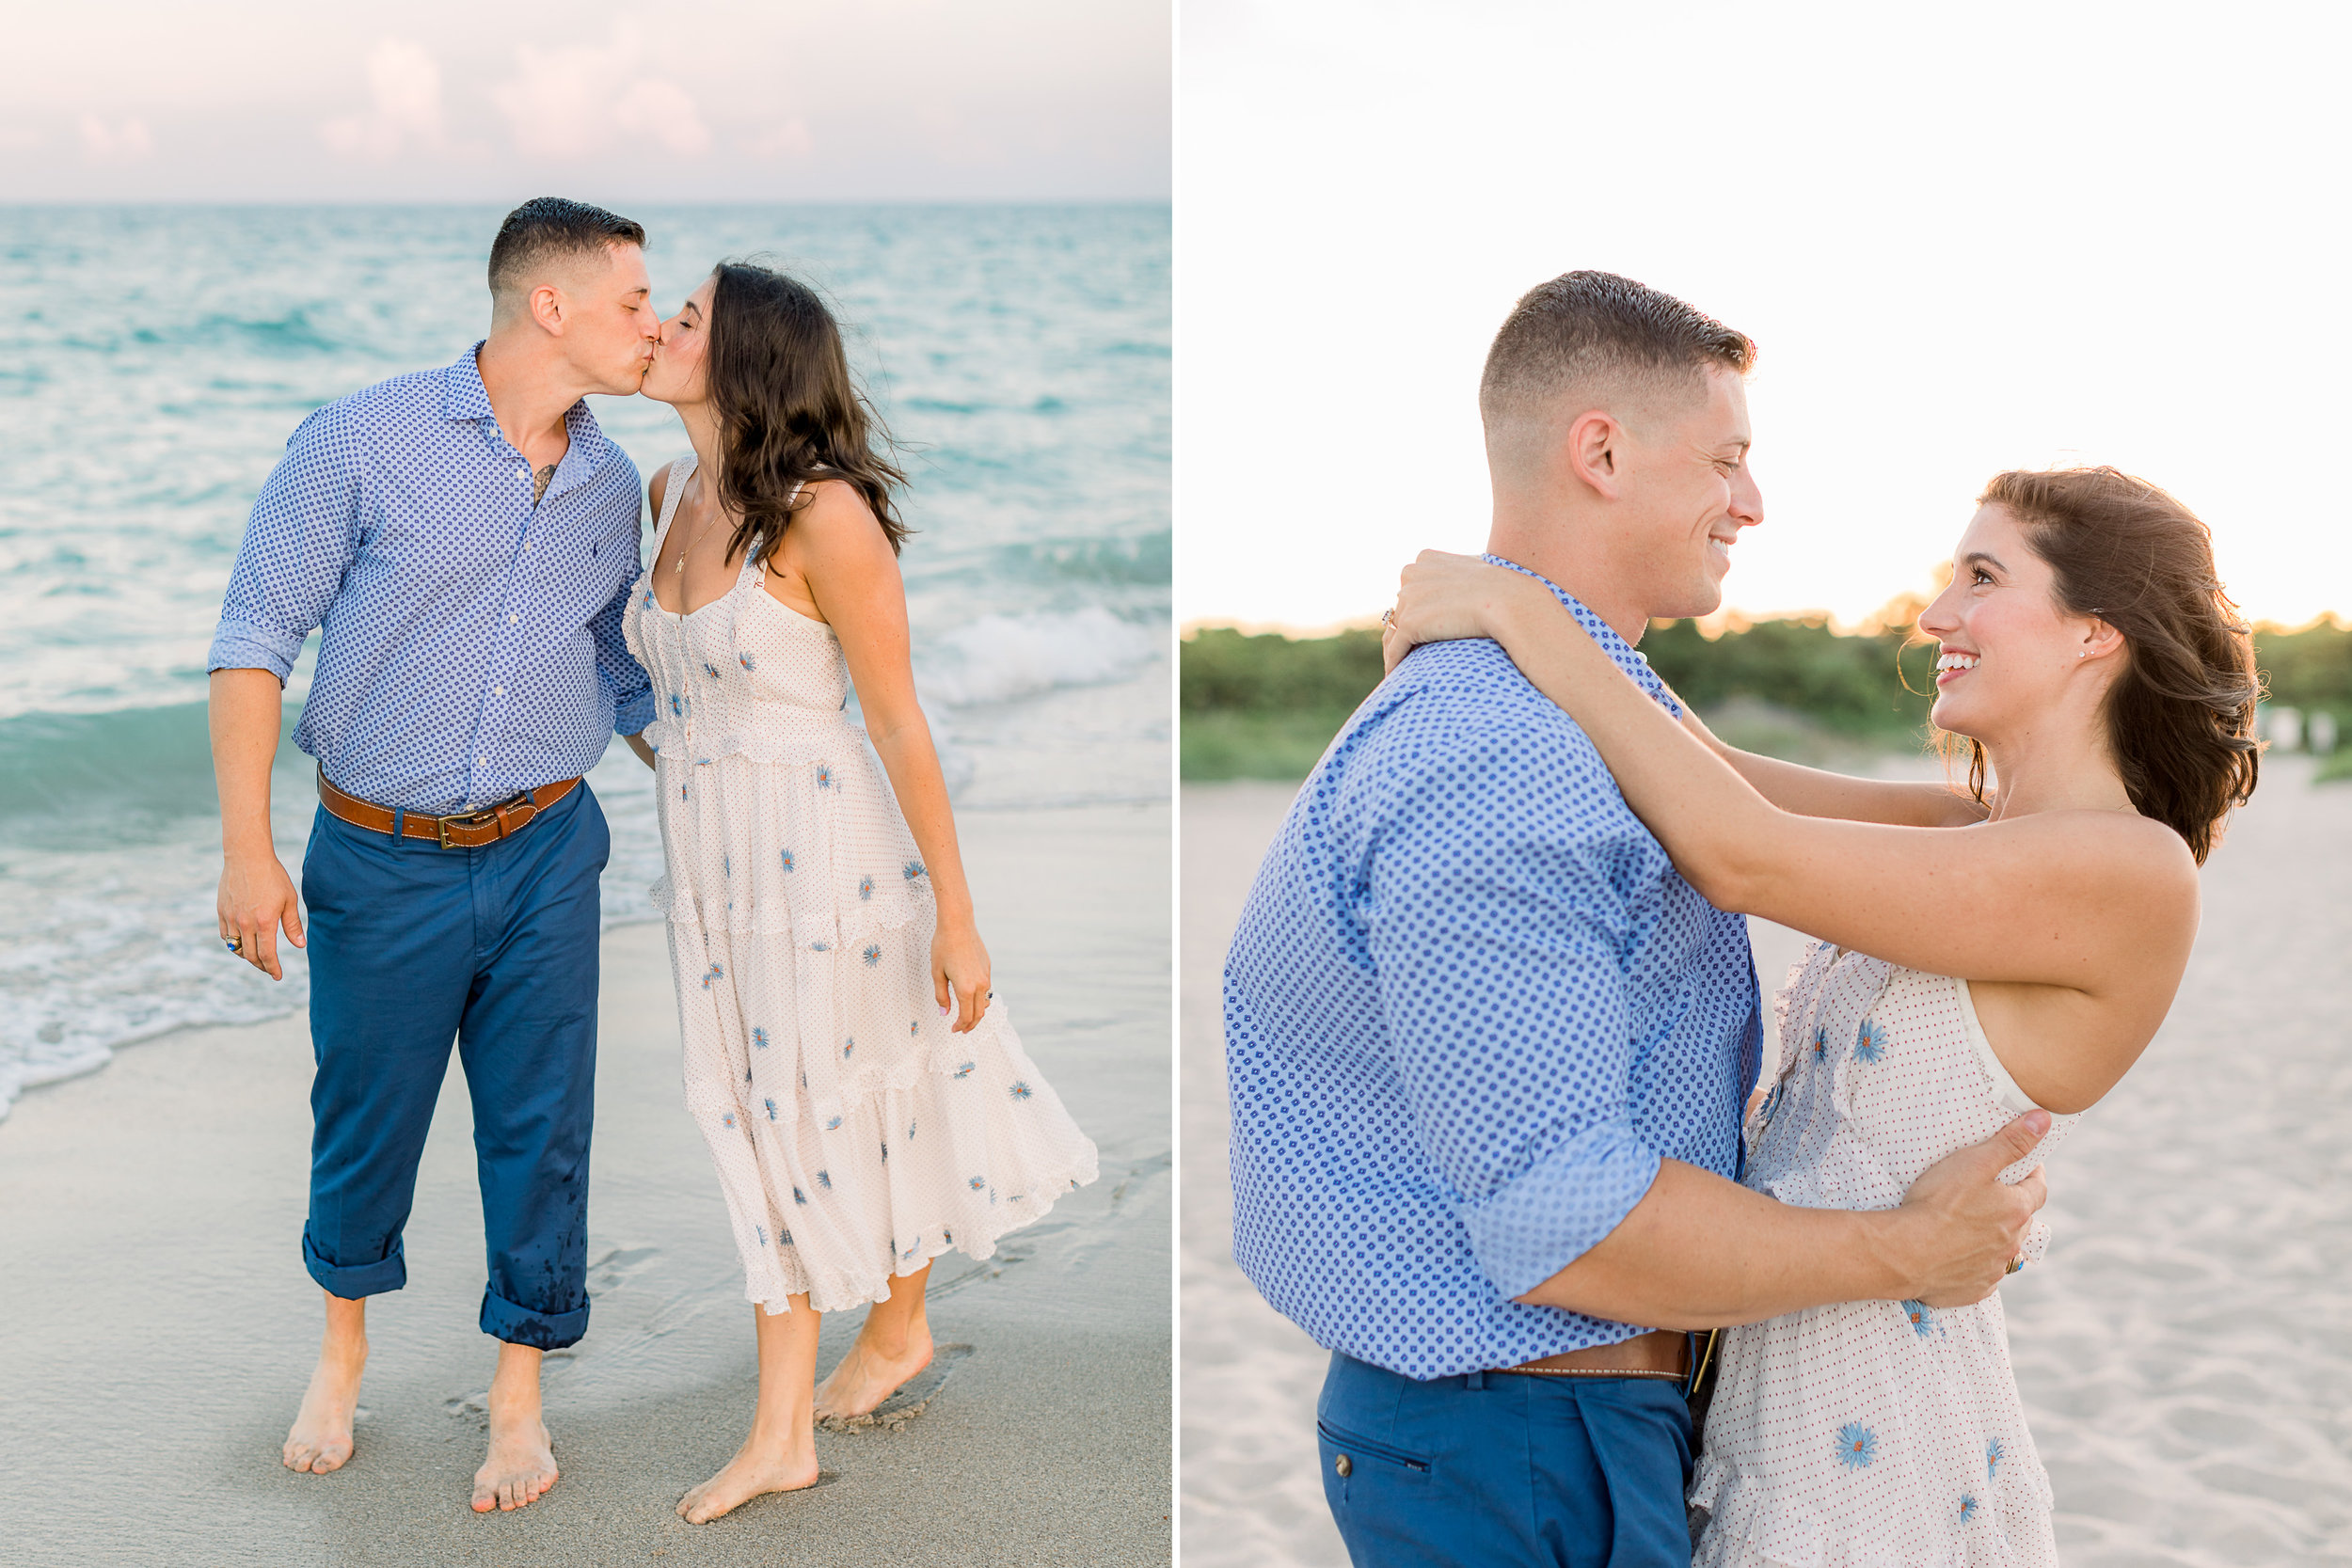 orlandoweddingphotography.jpg